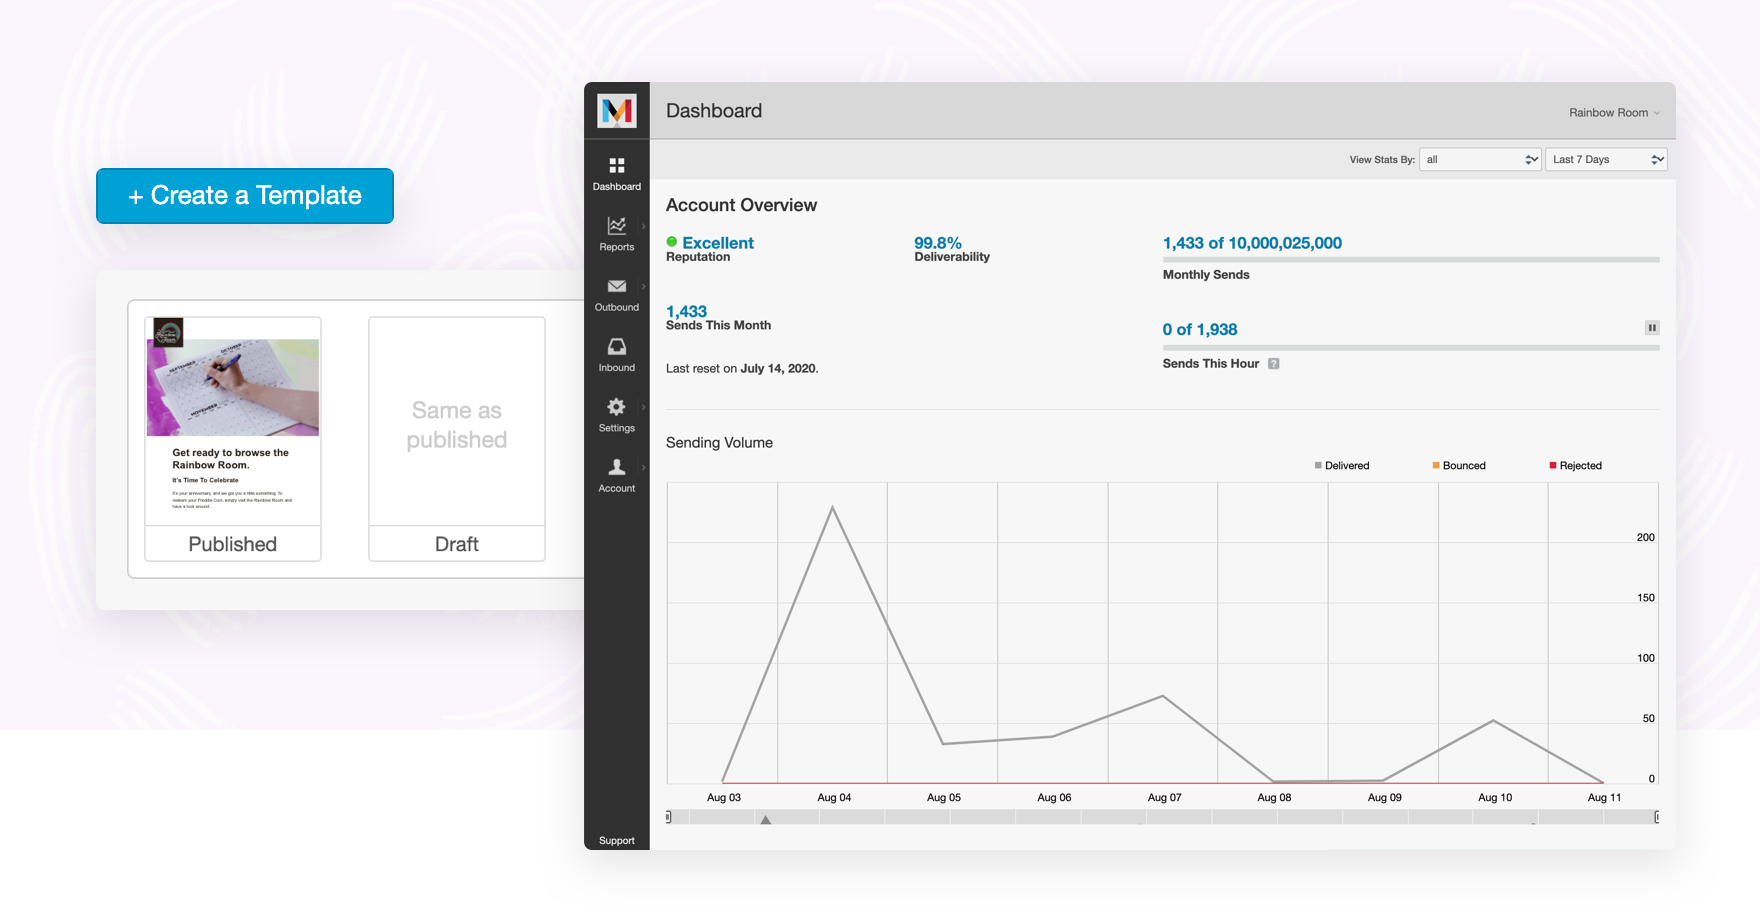 An example of Mailchimp's Transactional Email Automations dashboard